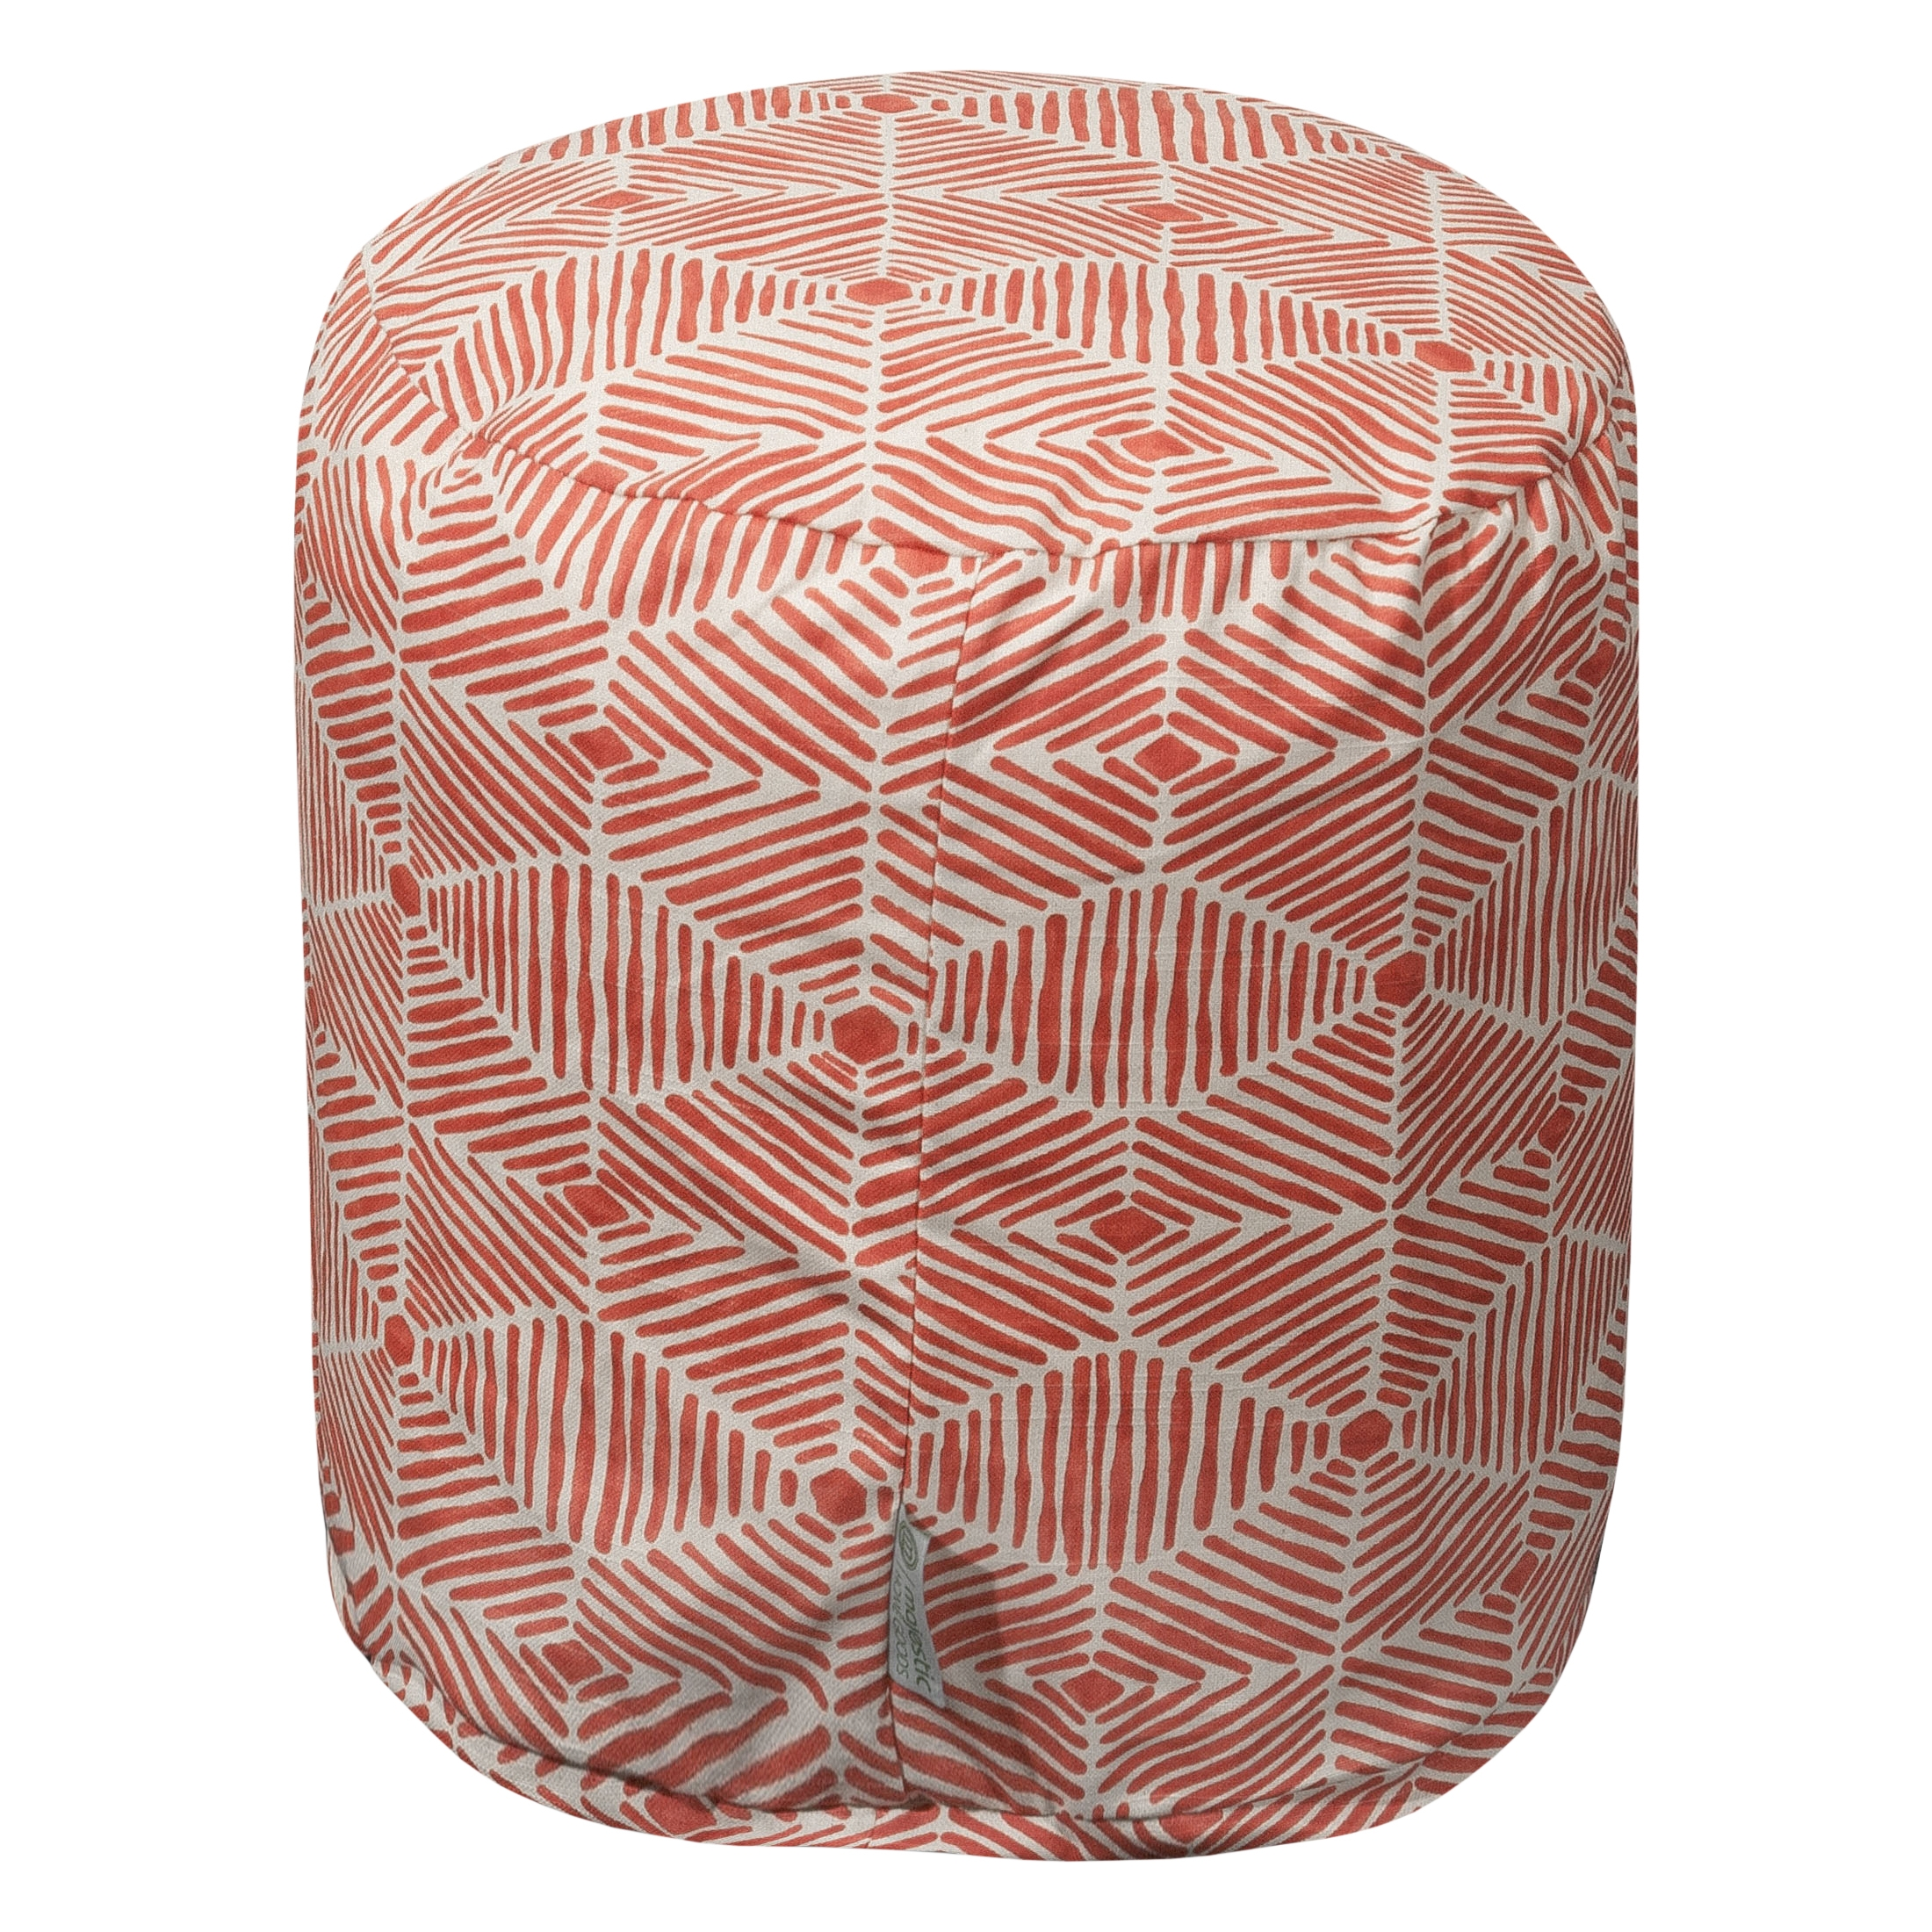 Tremendous Charlie Pouf Gmtry Best Dining Table And Chair Ideas Images Gmtryco